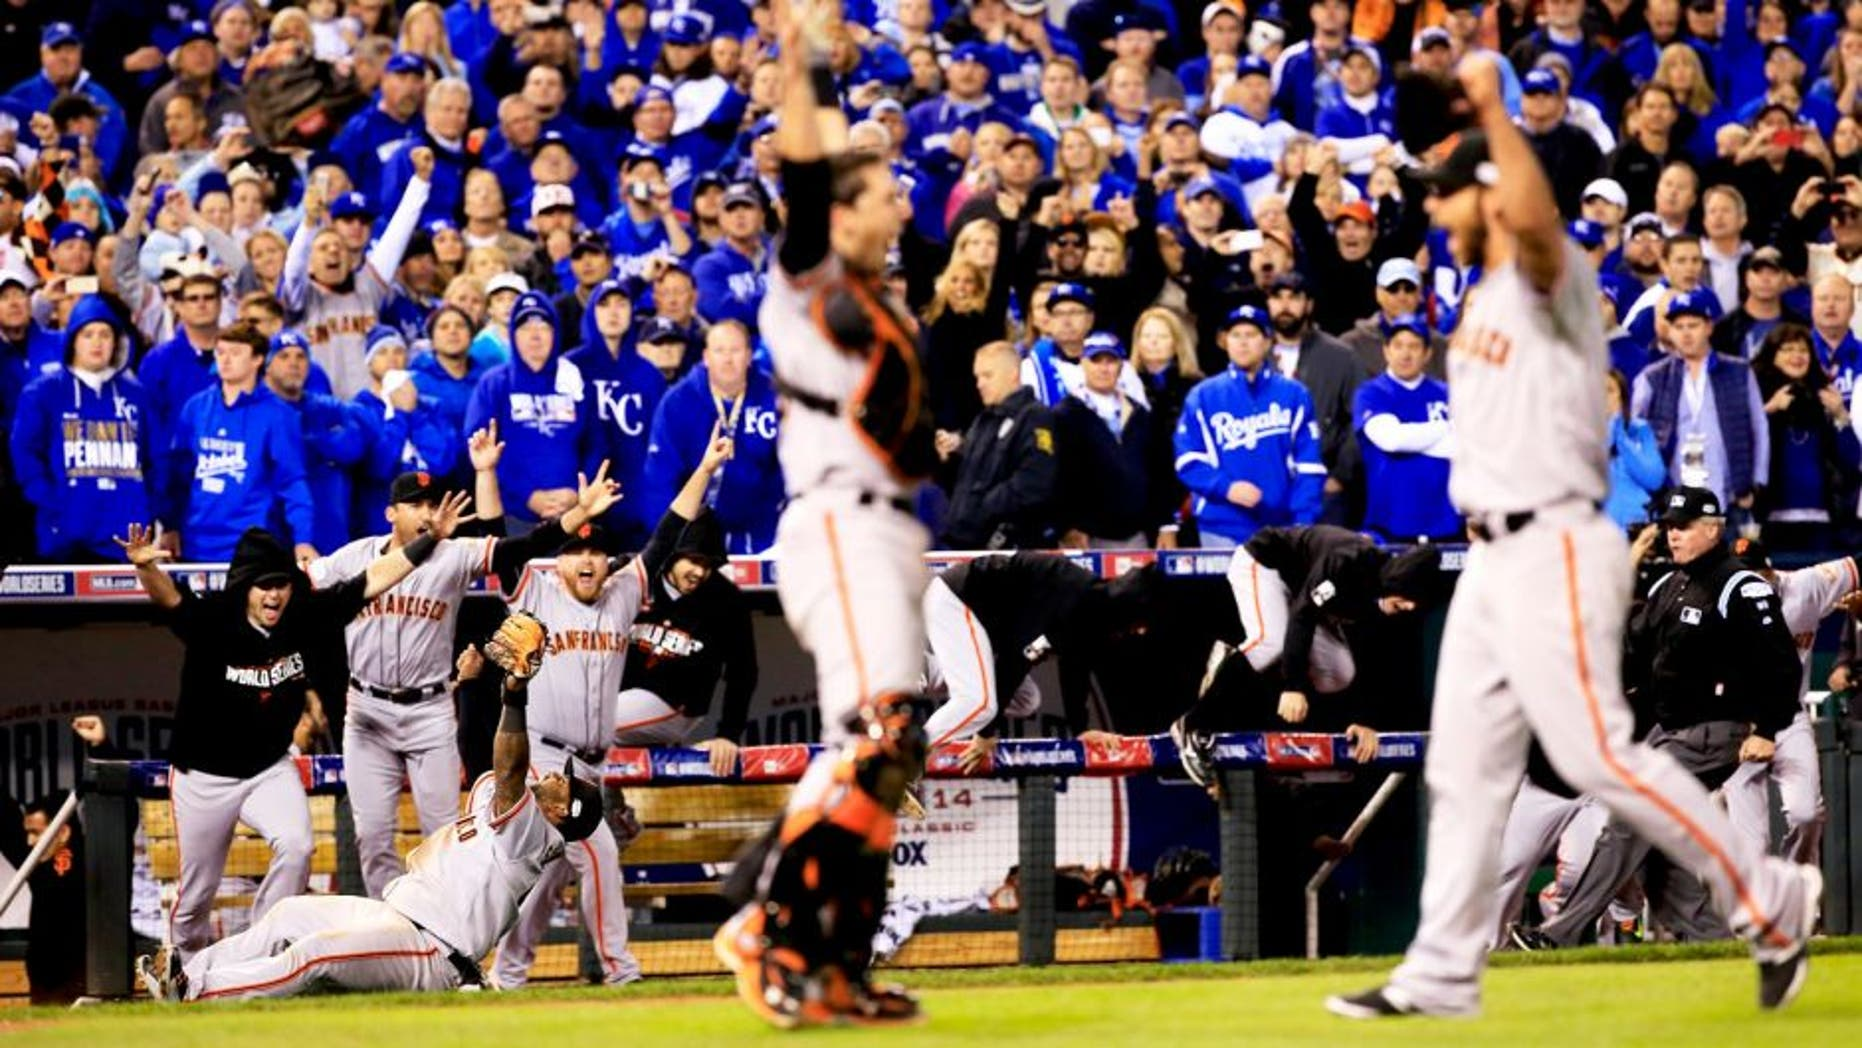 KANSAS CITY, MO - OCTOBER 29: Buster Posey #28 , Madison Bumgarner #40, Pablo Sandoval #48 and the San Francisco Giants celebrate after defeating the Kansas City Royals to win Game Seven of the 2014 World Series by a score of 3-2 at Kauffman Stadium on October 29, 2014 in Kansas City, Missouri. (Photo by Jamie Squire/Getty Images)